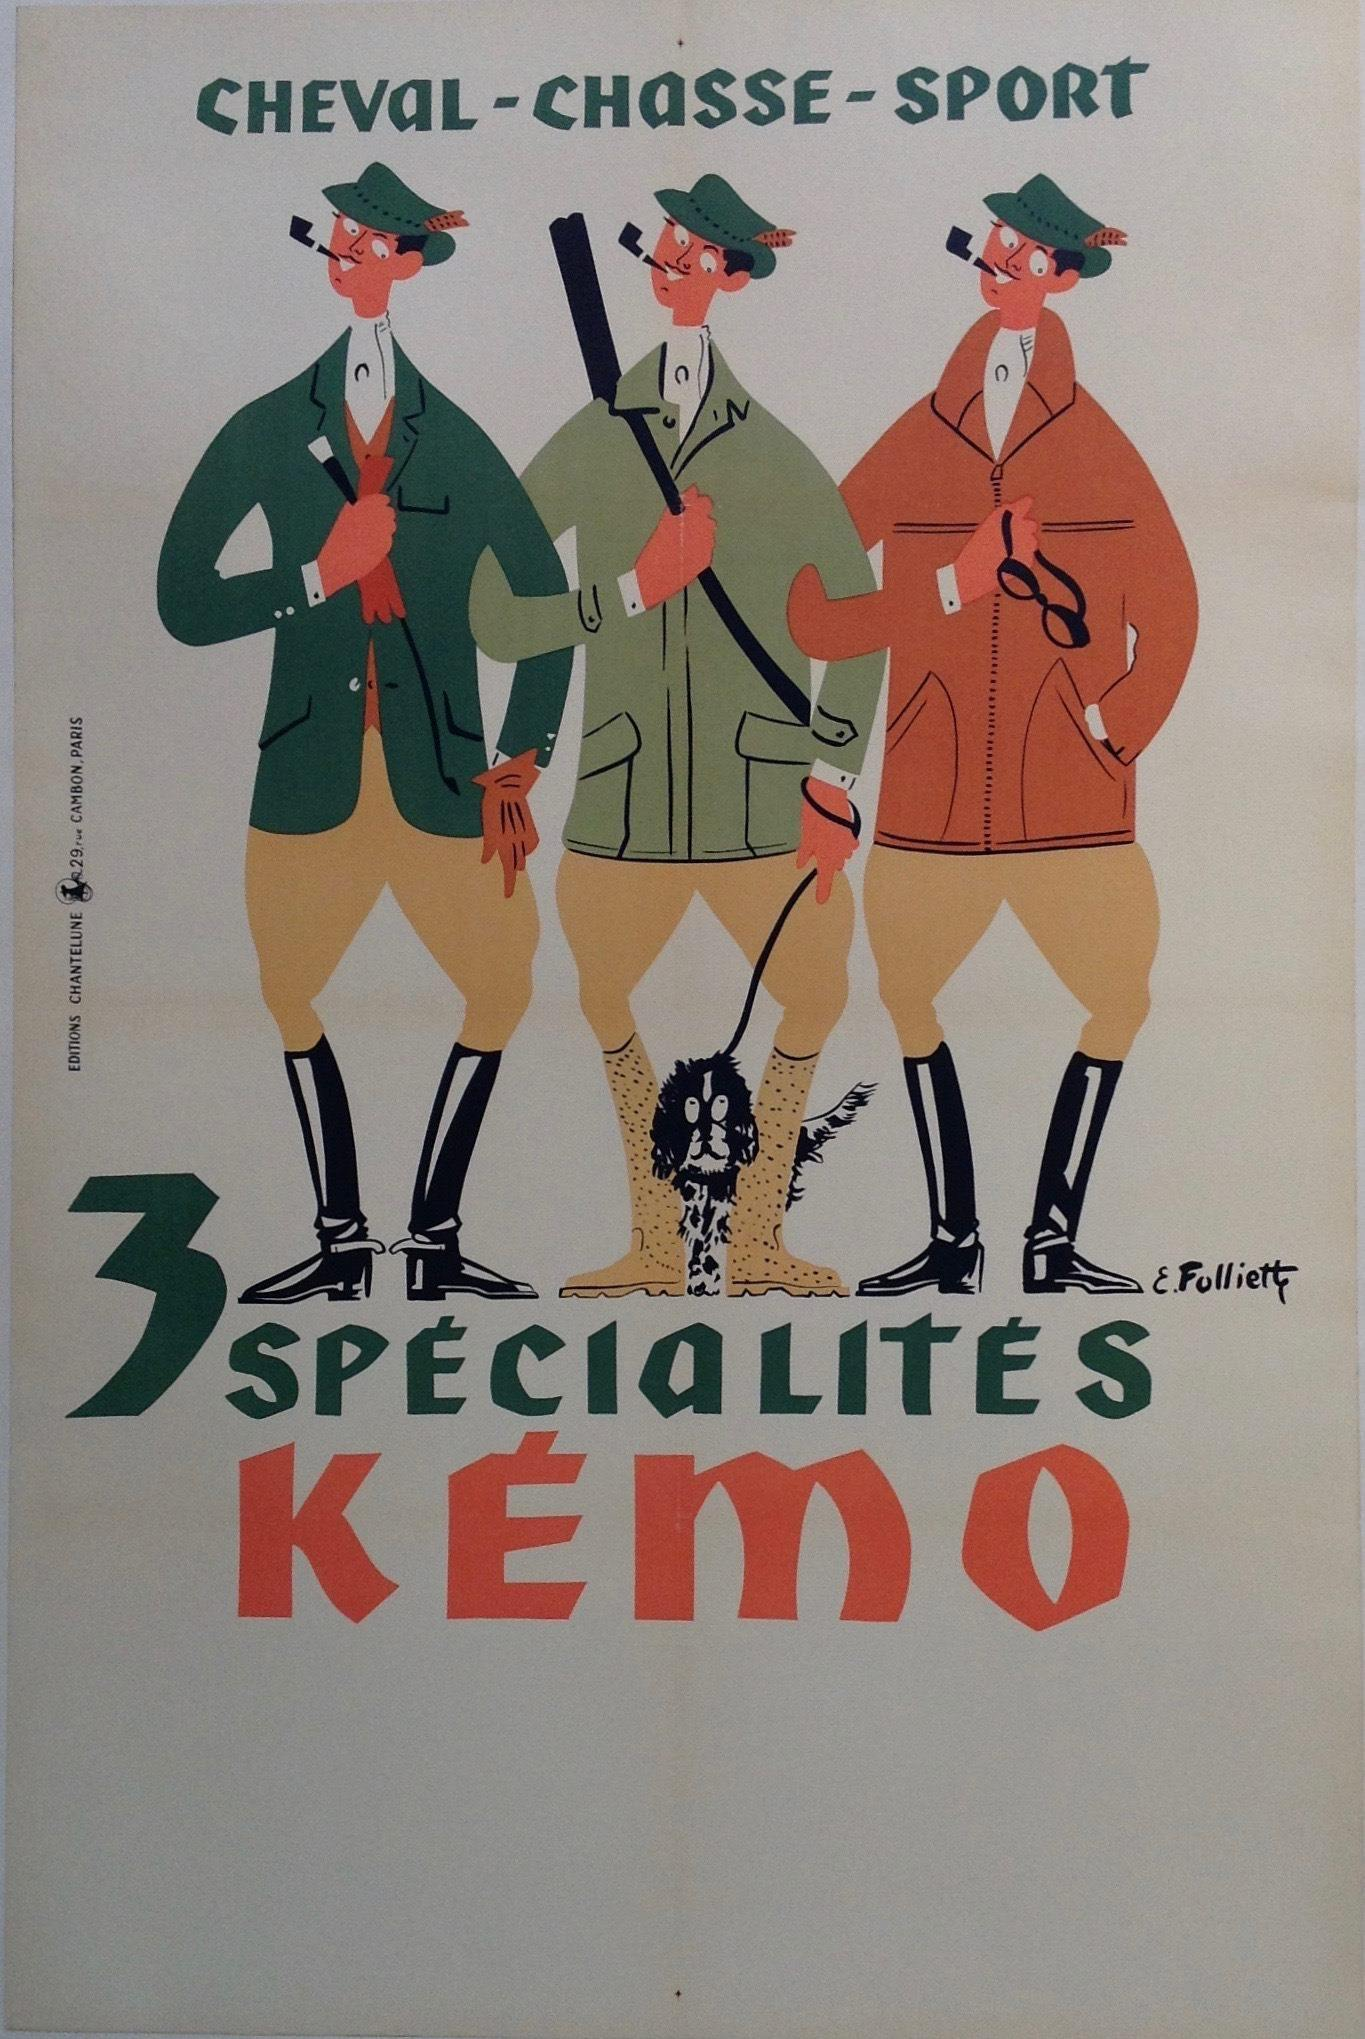 3 Specialites Kemo - Poster Museum